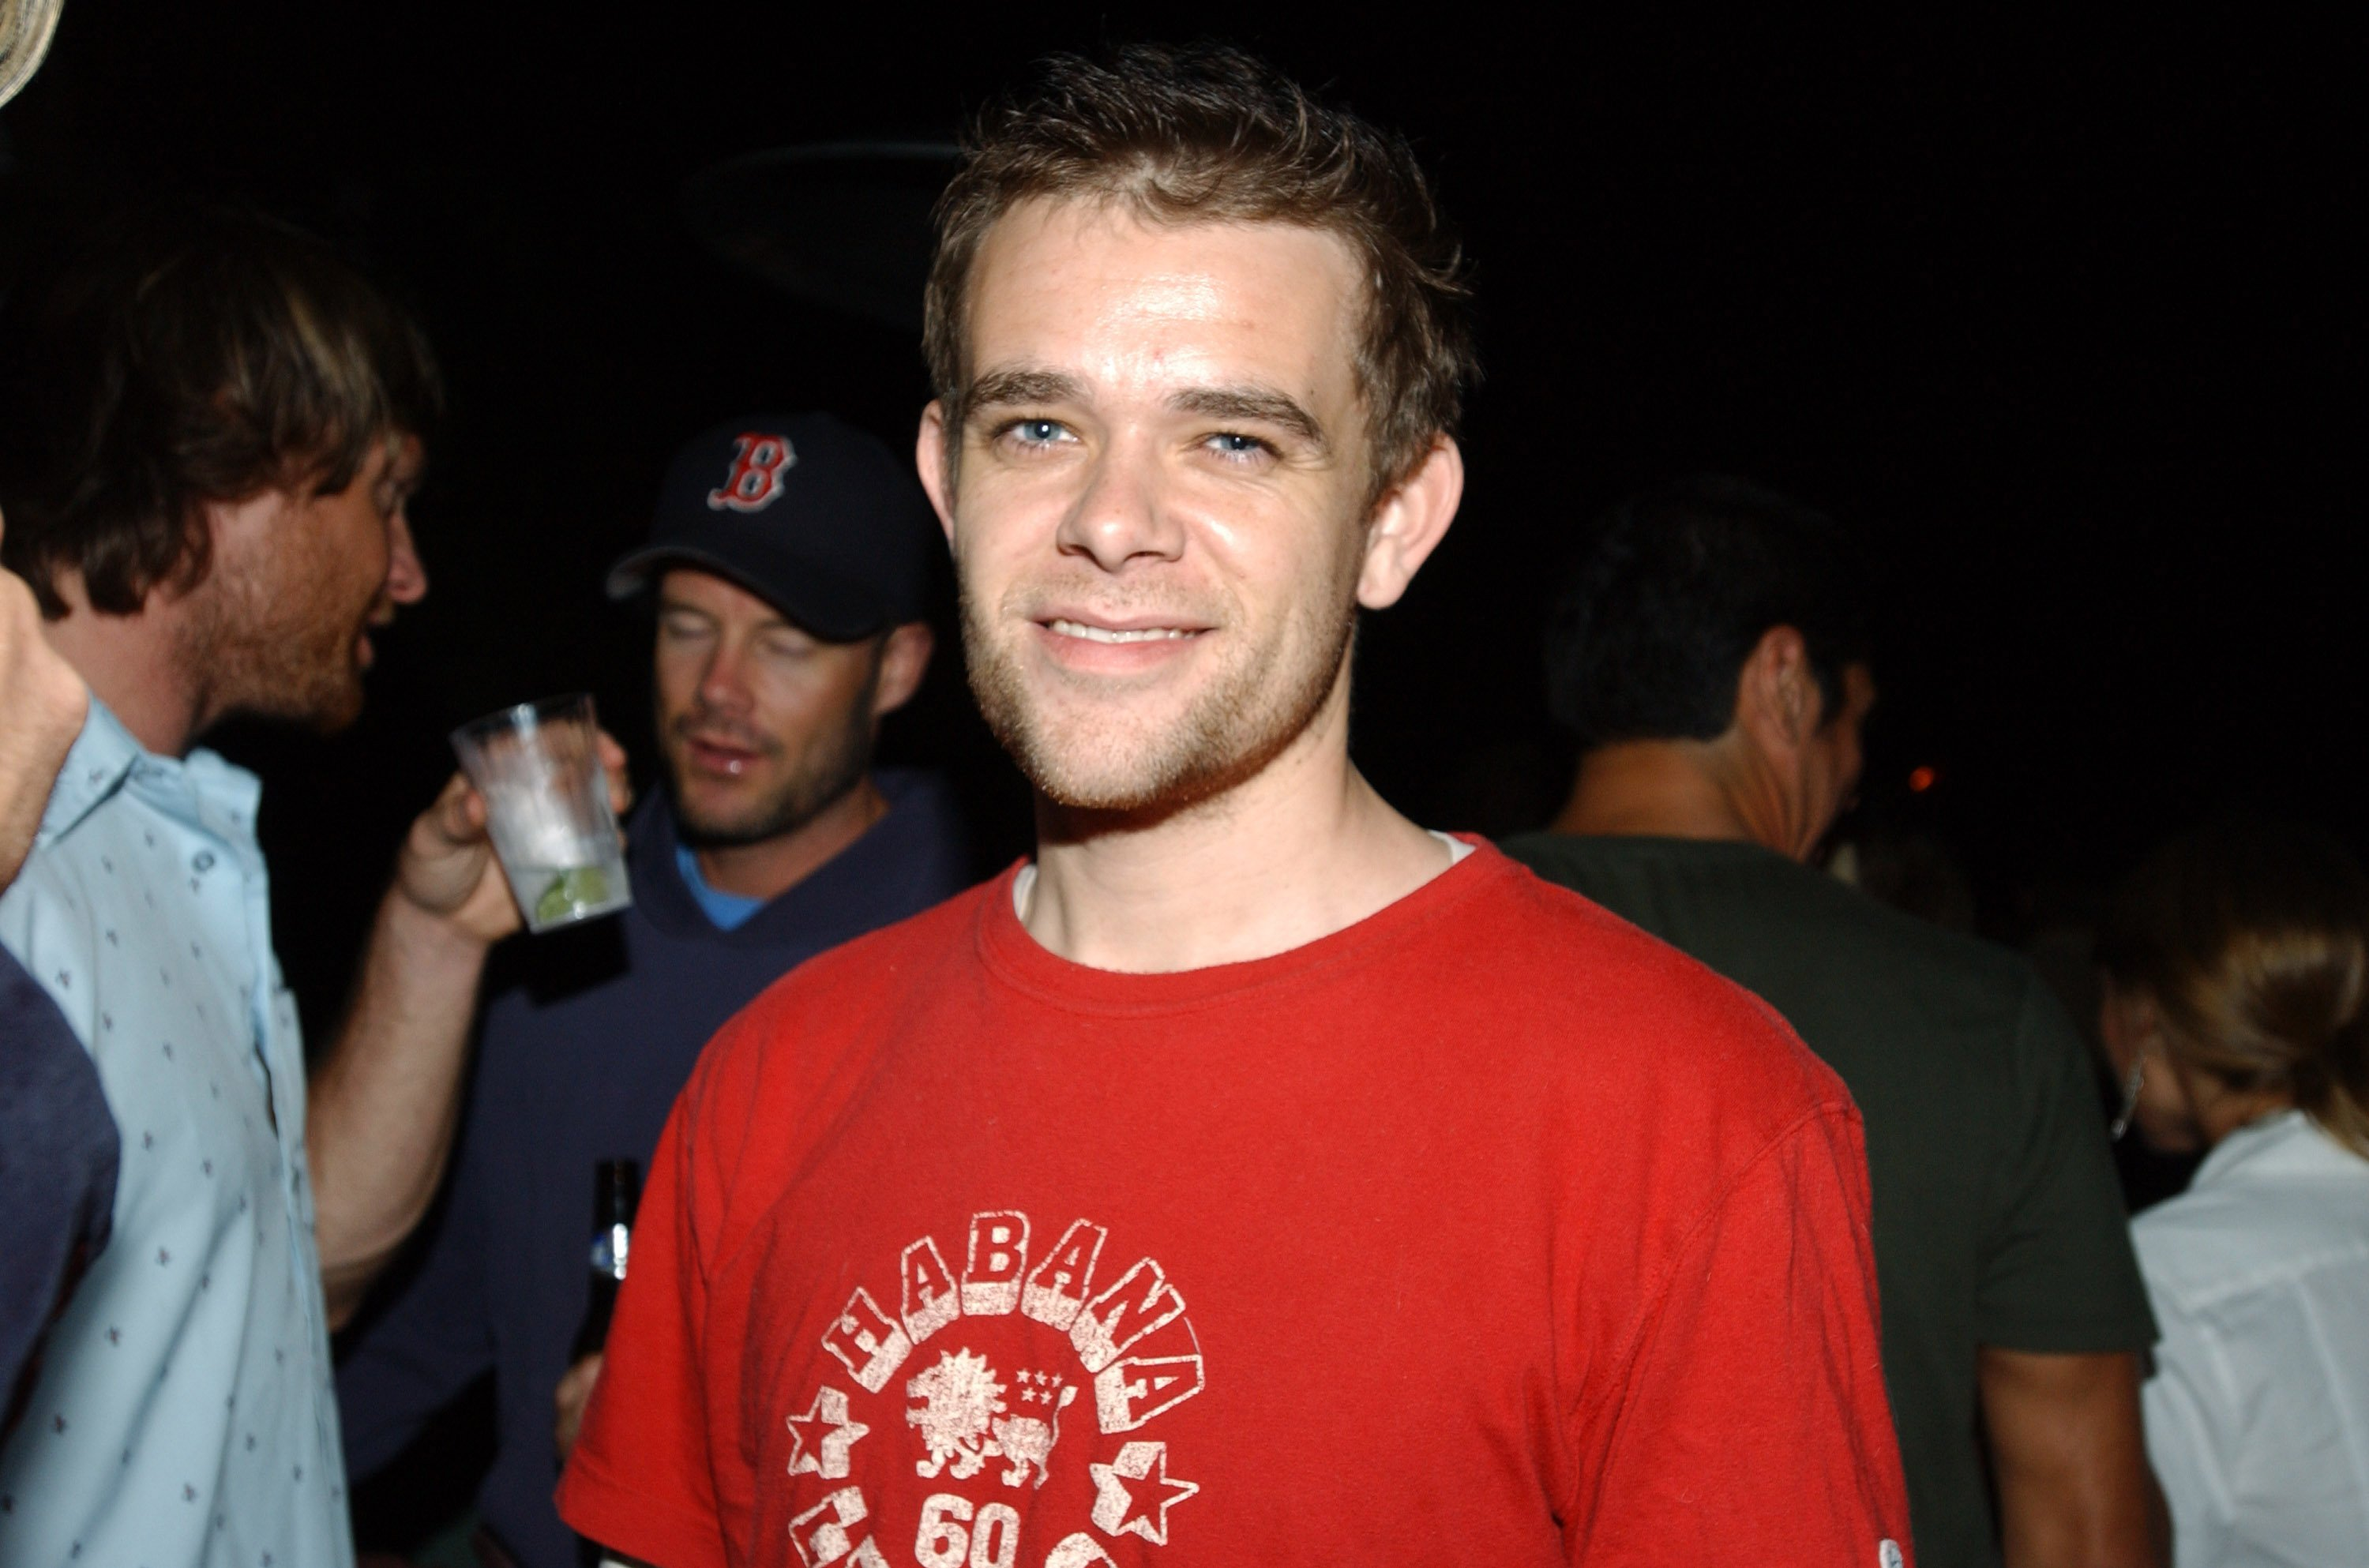 An undated photo of child star actor Nick Stahl in a red T-shirt | Photo: Getty Images